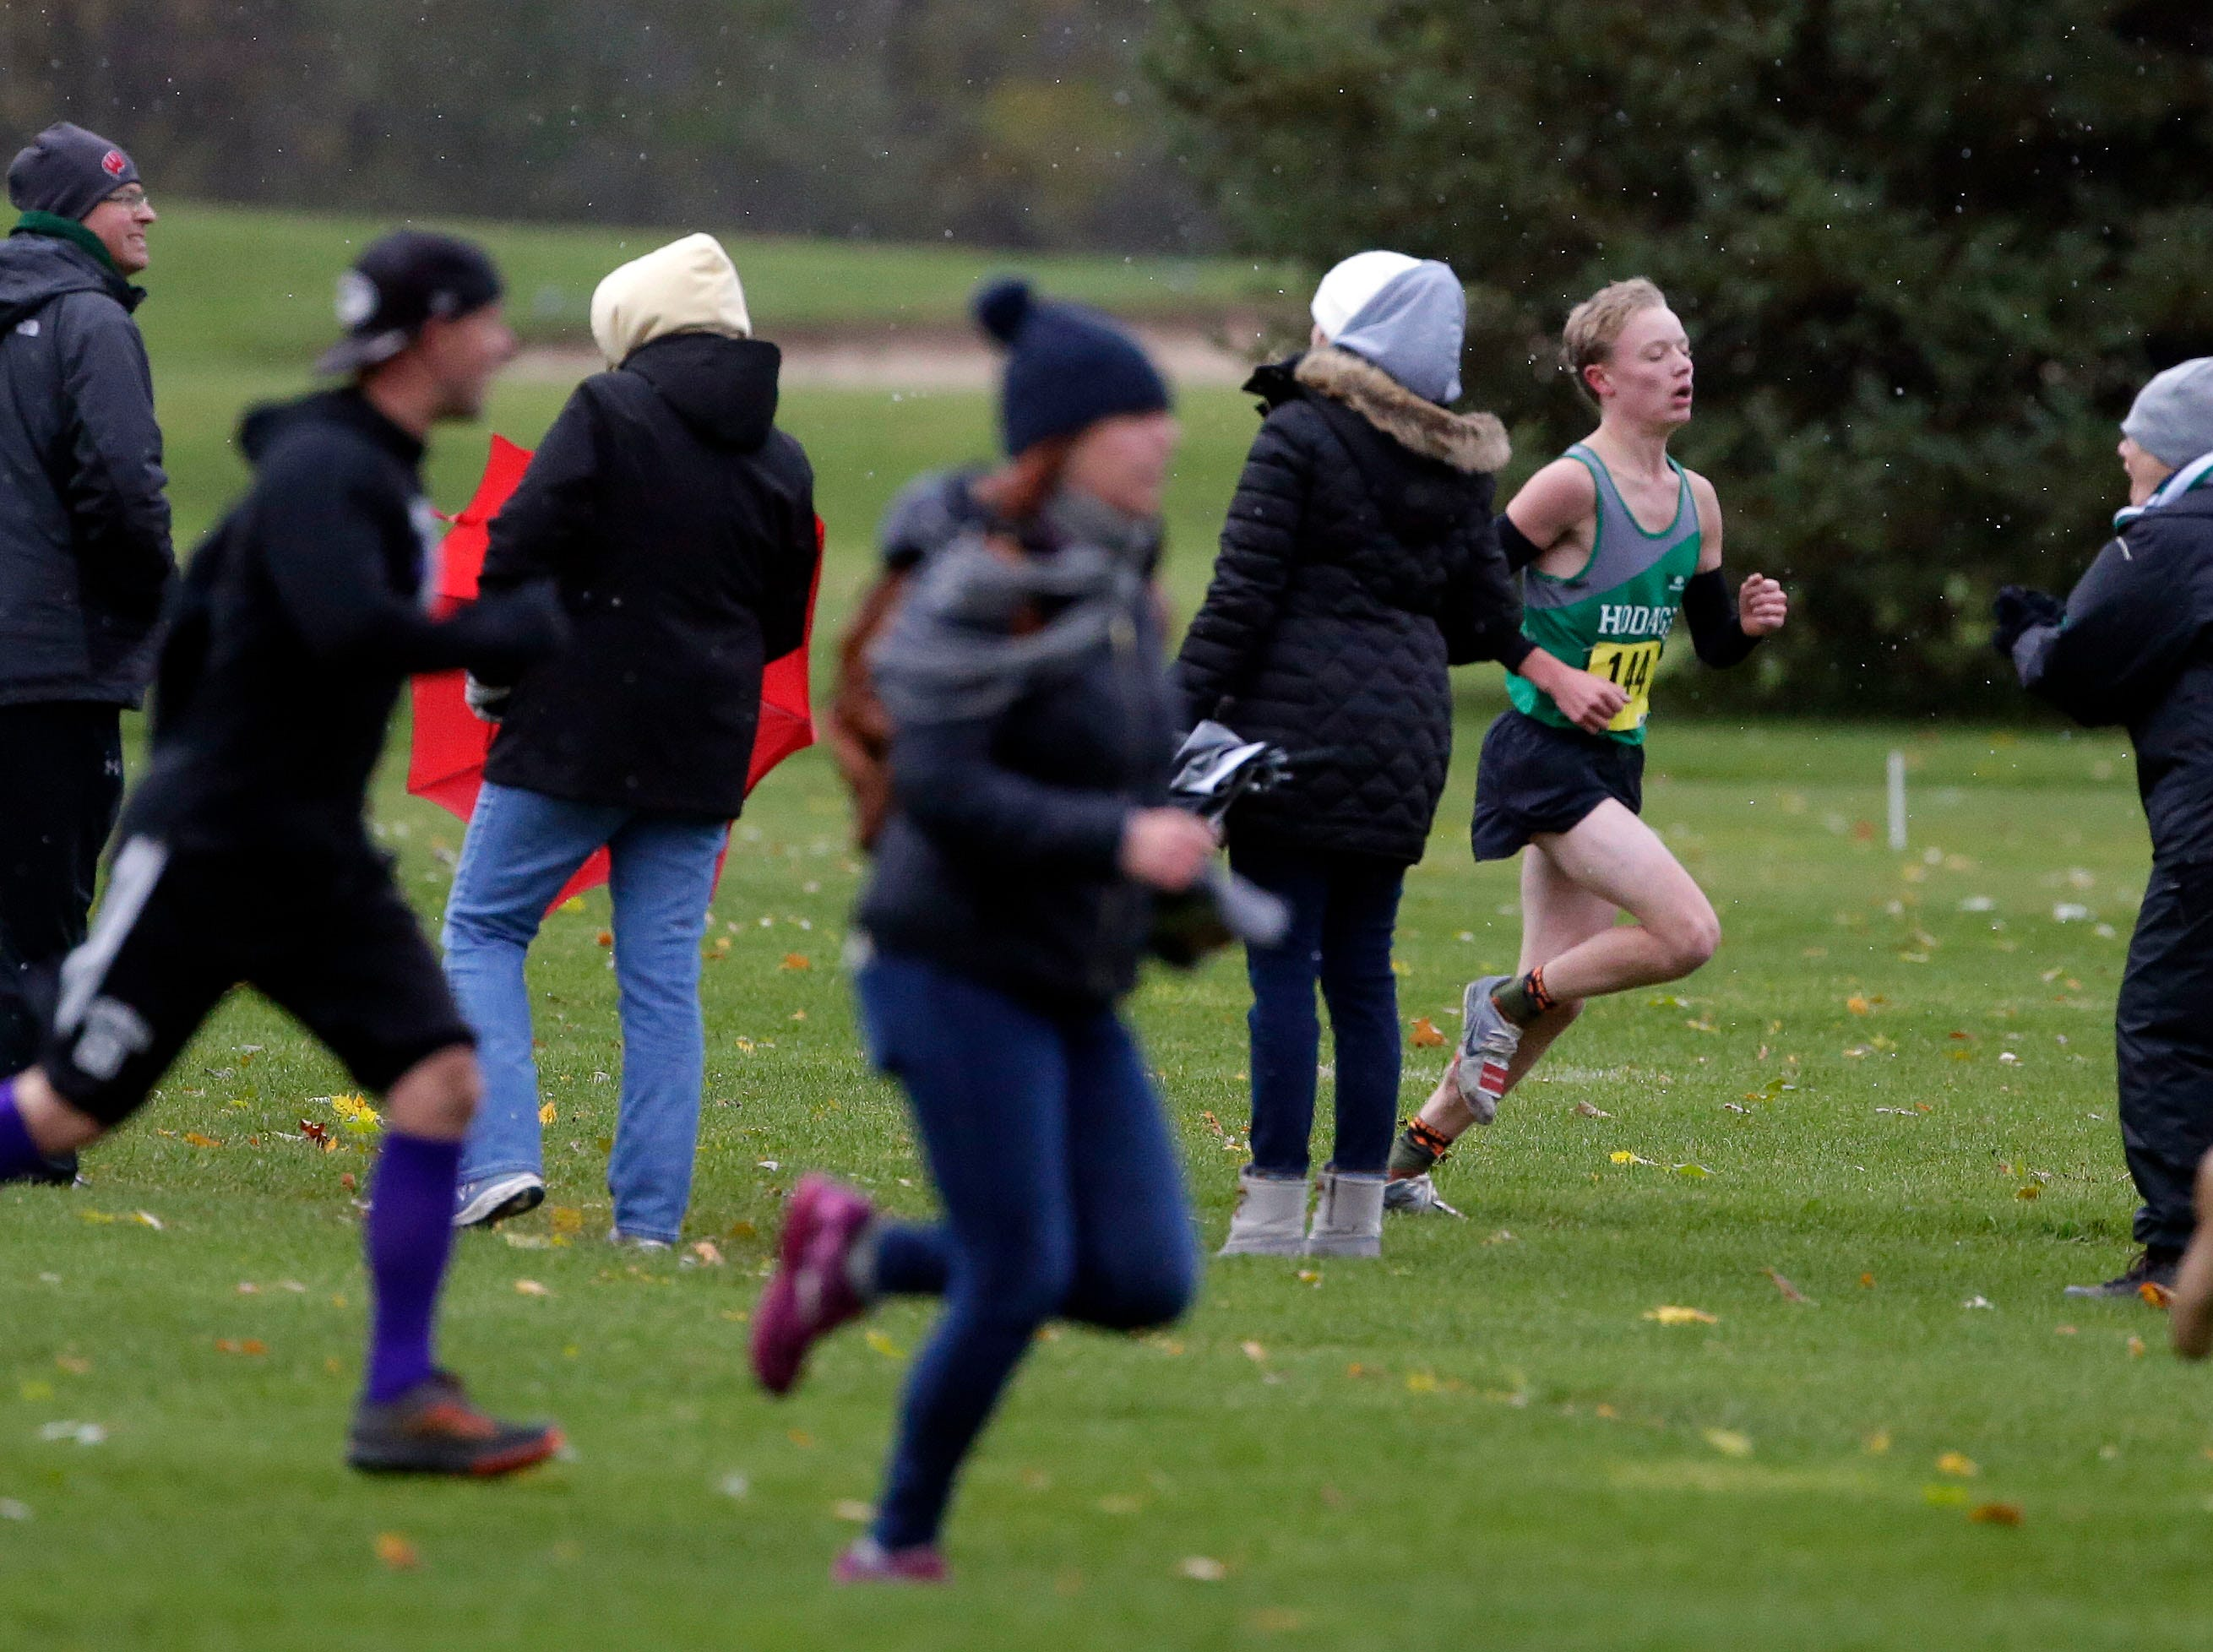 Fans rush along the course as runners near the finish during the WIAA Division 2 Freedom cross country sectional Saturday, October 20, 2018, at Irish Waters Golf Course in Freedom, Wis.